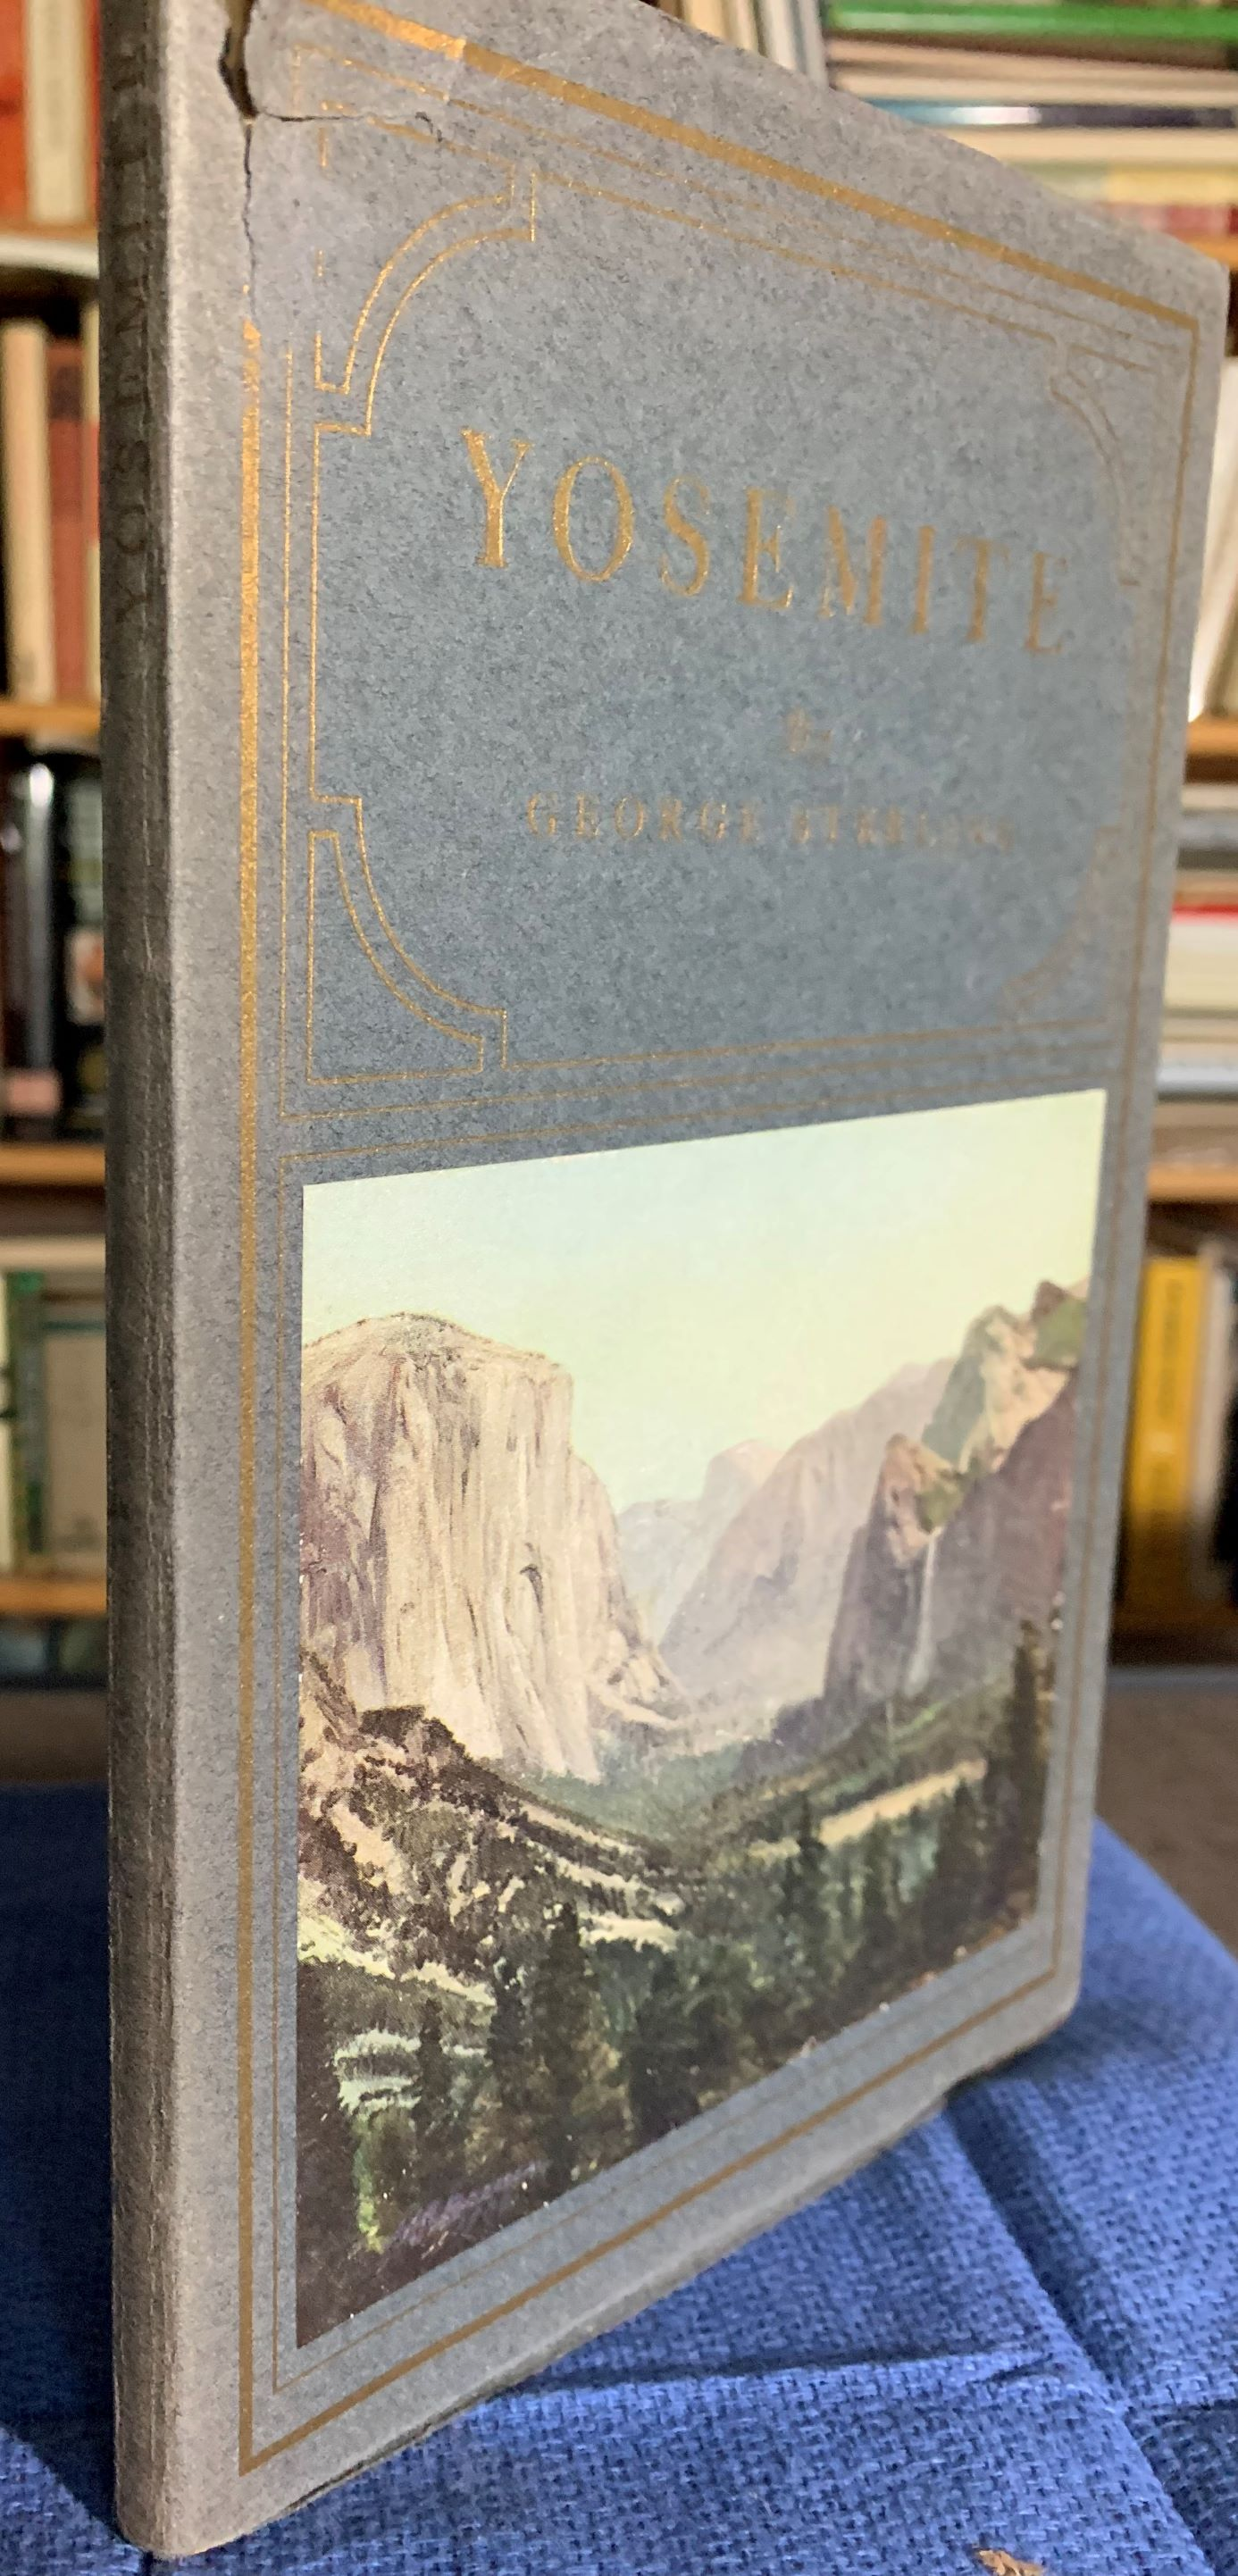 Image for Yosemite, An Ode.  With, A Cover in Colour After the Painting by H. J. Breuer, and, Illustrations After Photographs by W. E. Dassonville.